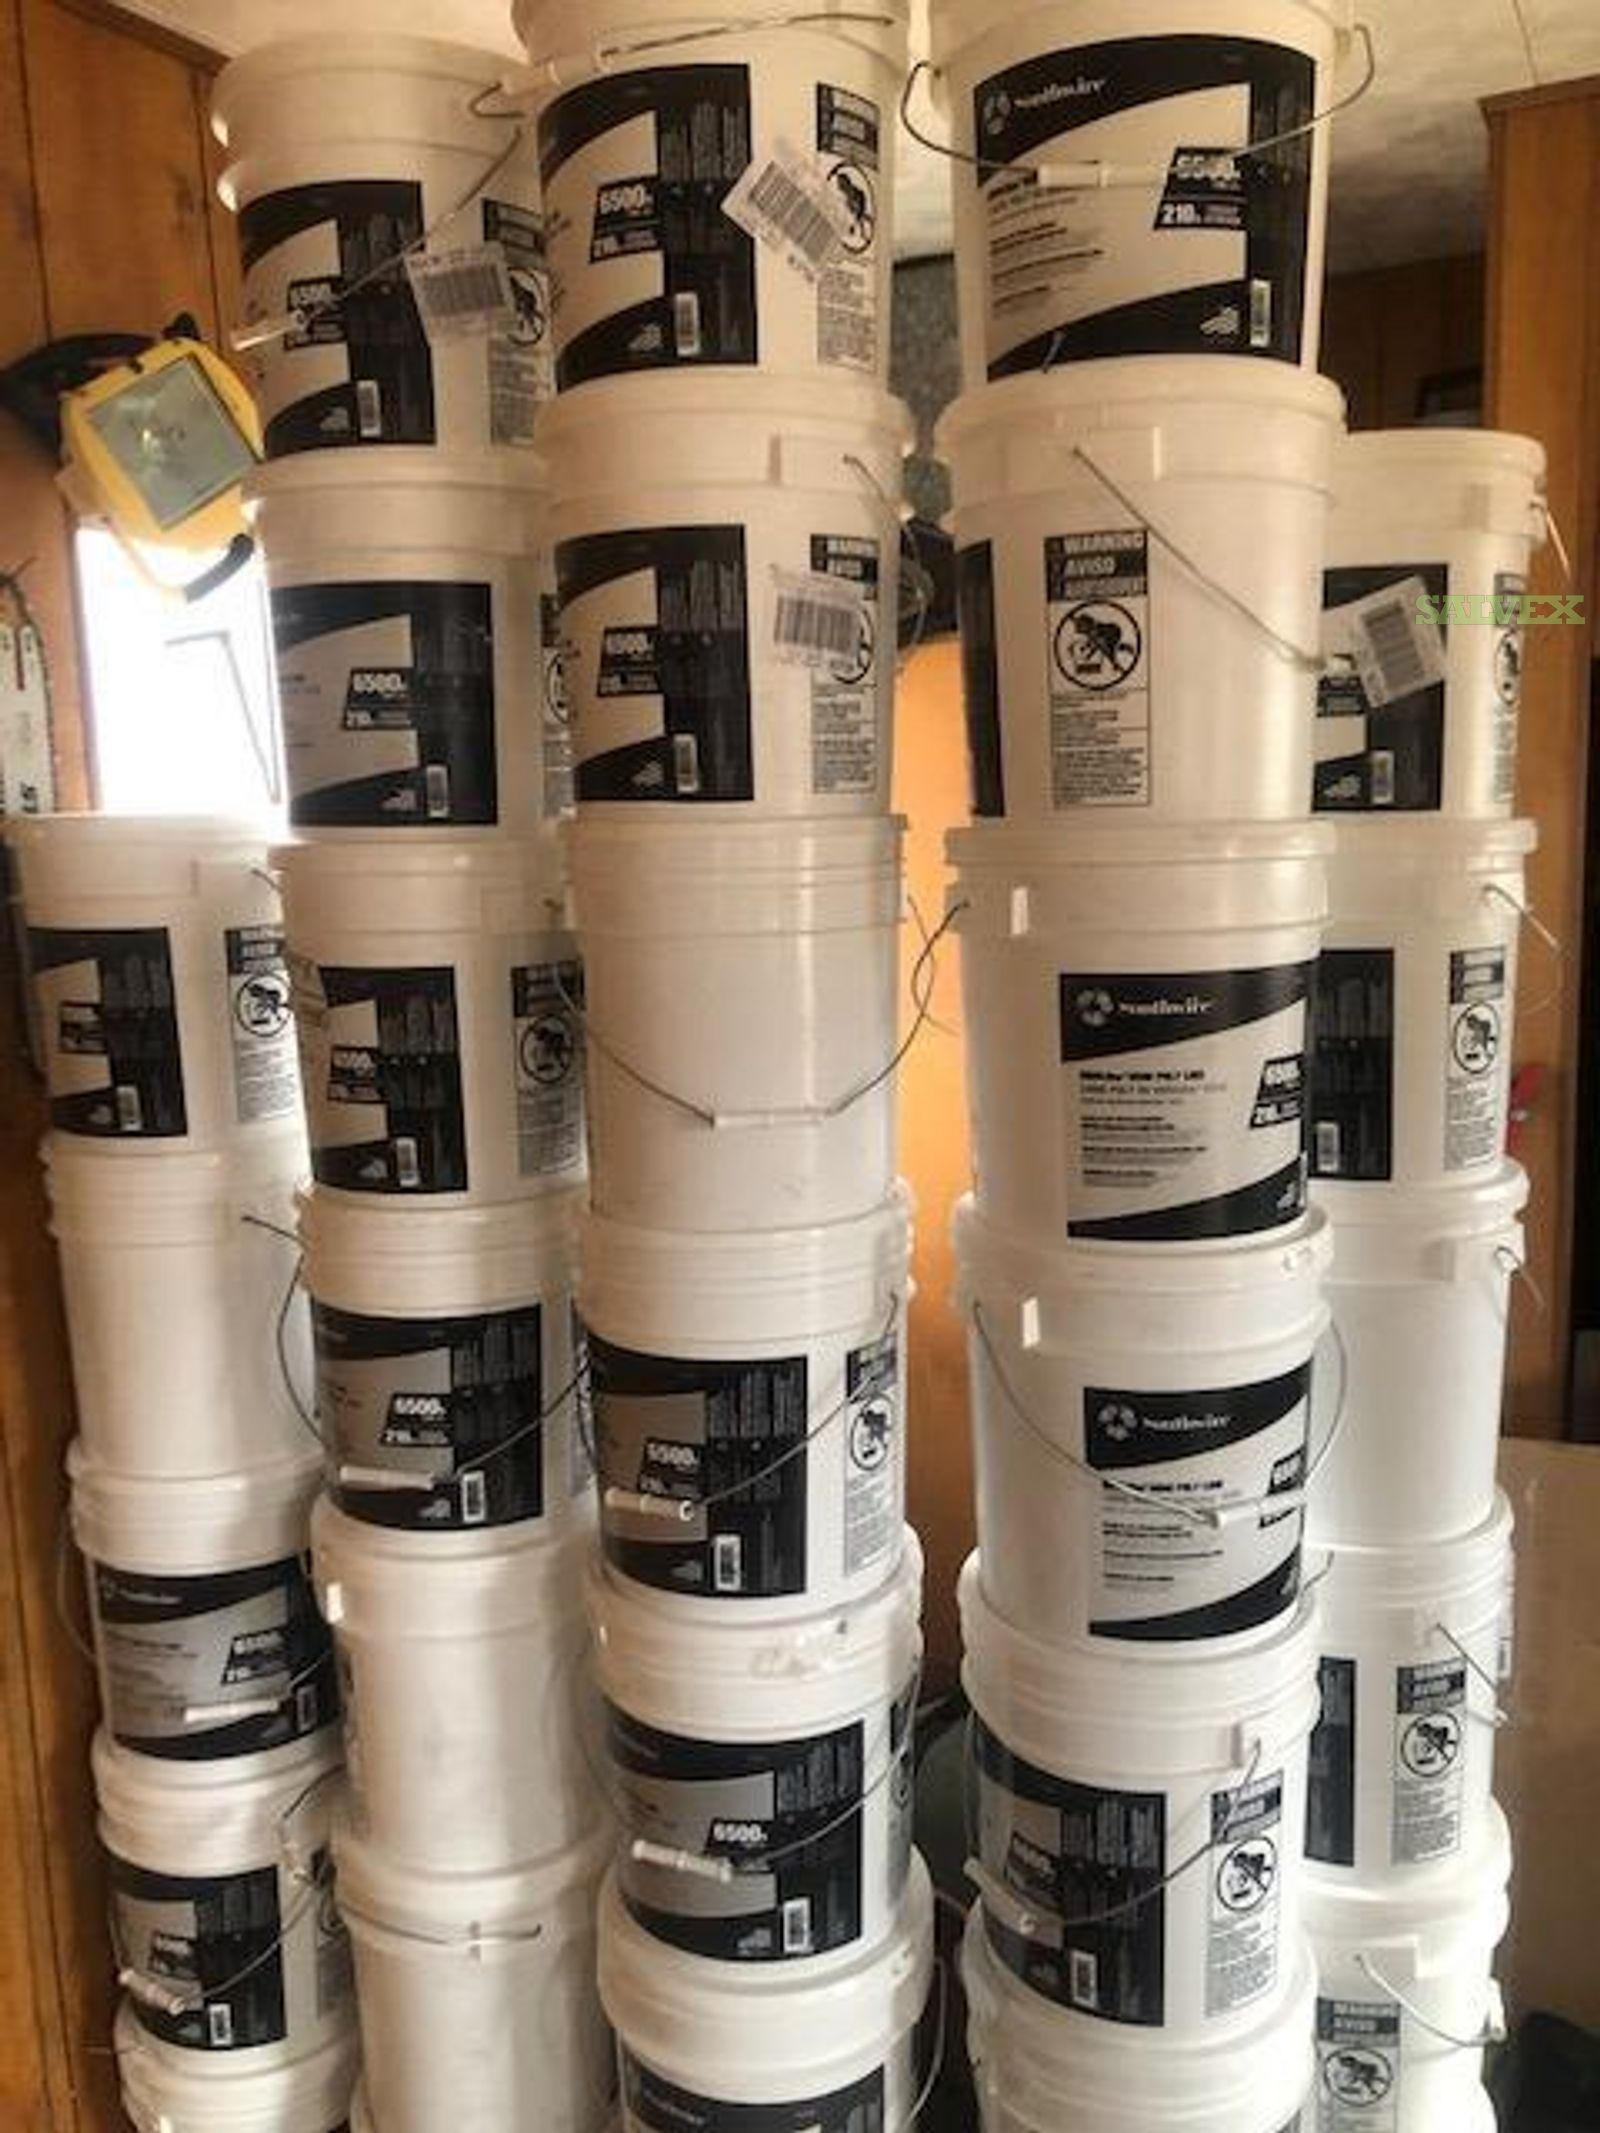 Southwire QWIKLine 6500 Poly Line - Used to Pull Electrical Wire (400 Buckets)